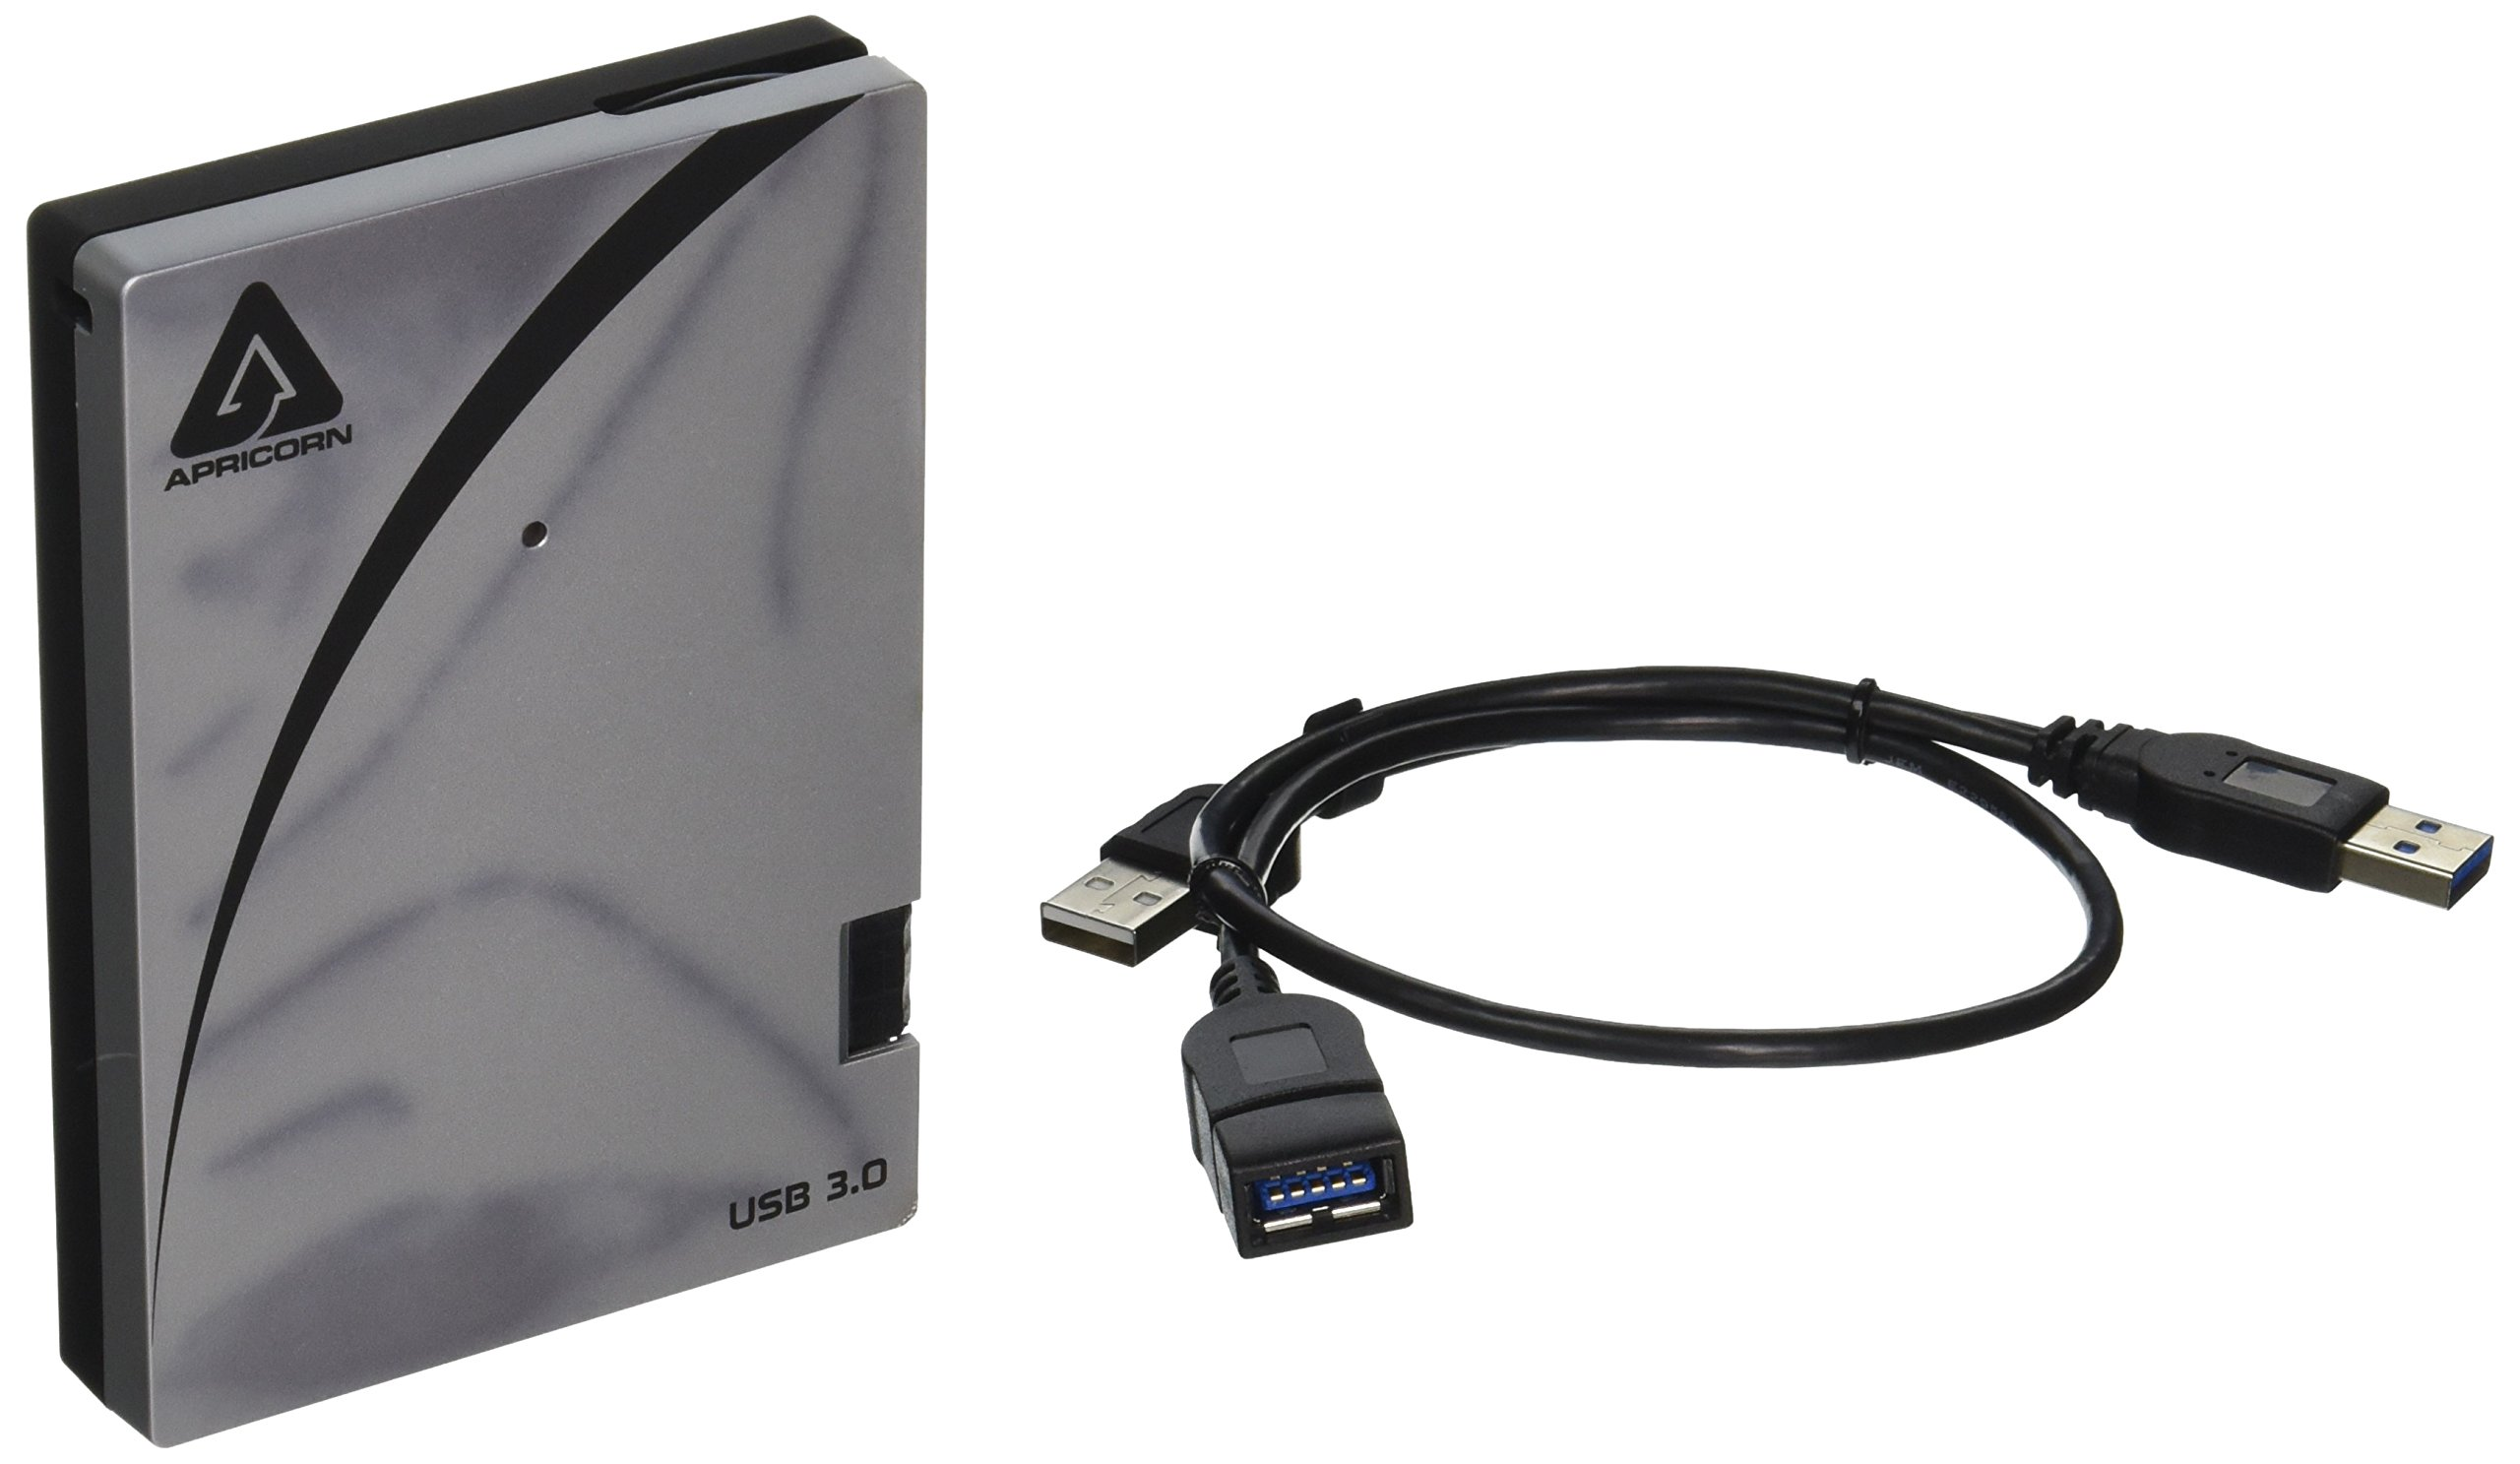 Apricorn Aegis Portable 3.0 USB 3.0 Portable 256GB SSD with Integrated USB Cable (A25-3USB-S256) by Apricorn